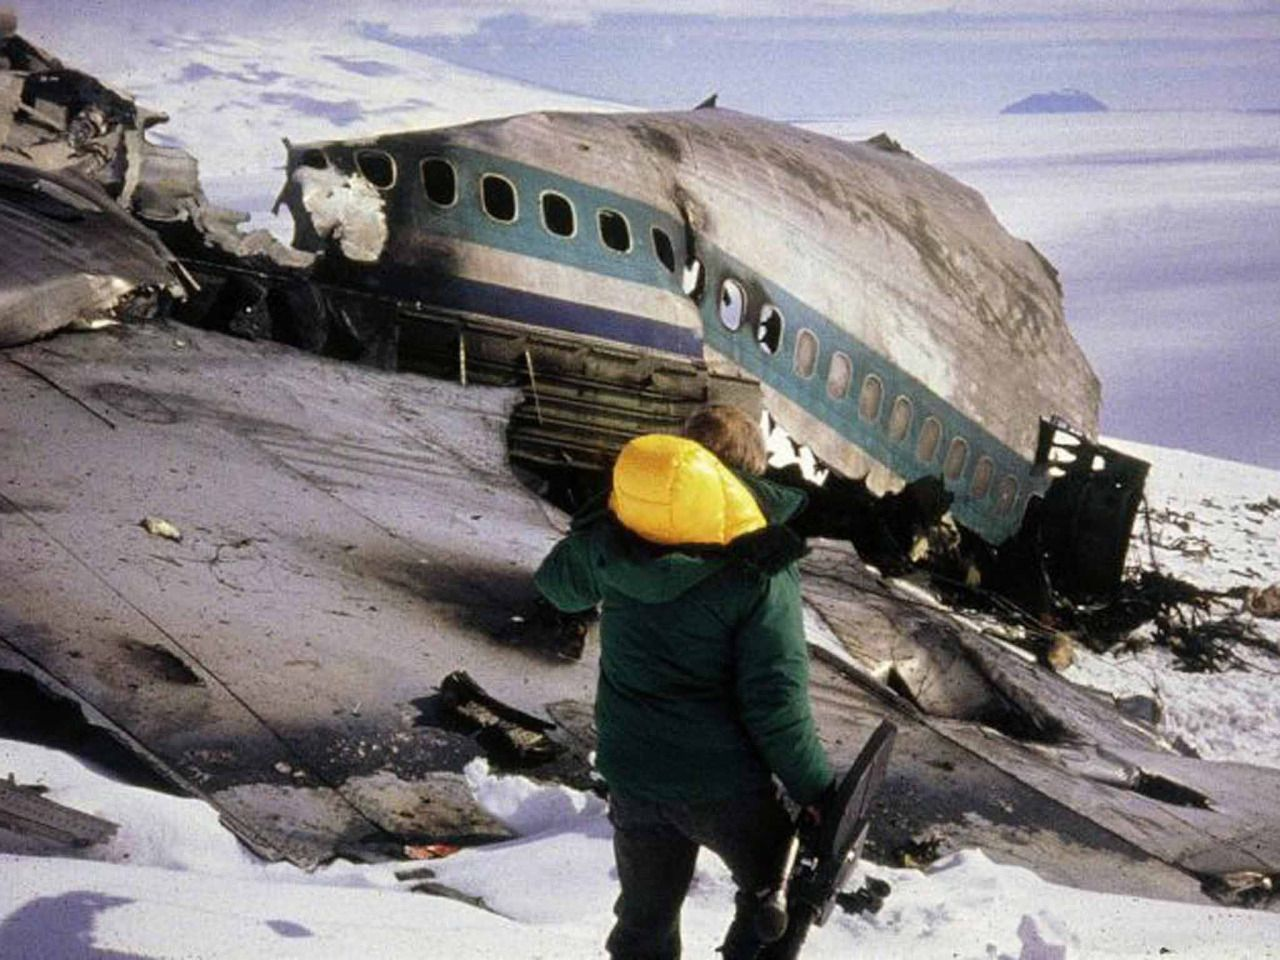 The wreckage of Air New Zealand Flight 901 on the flank of